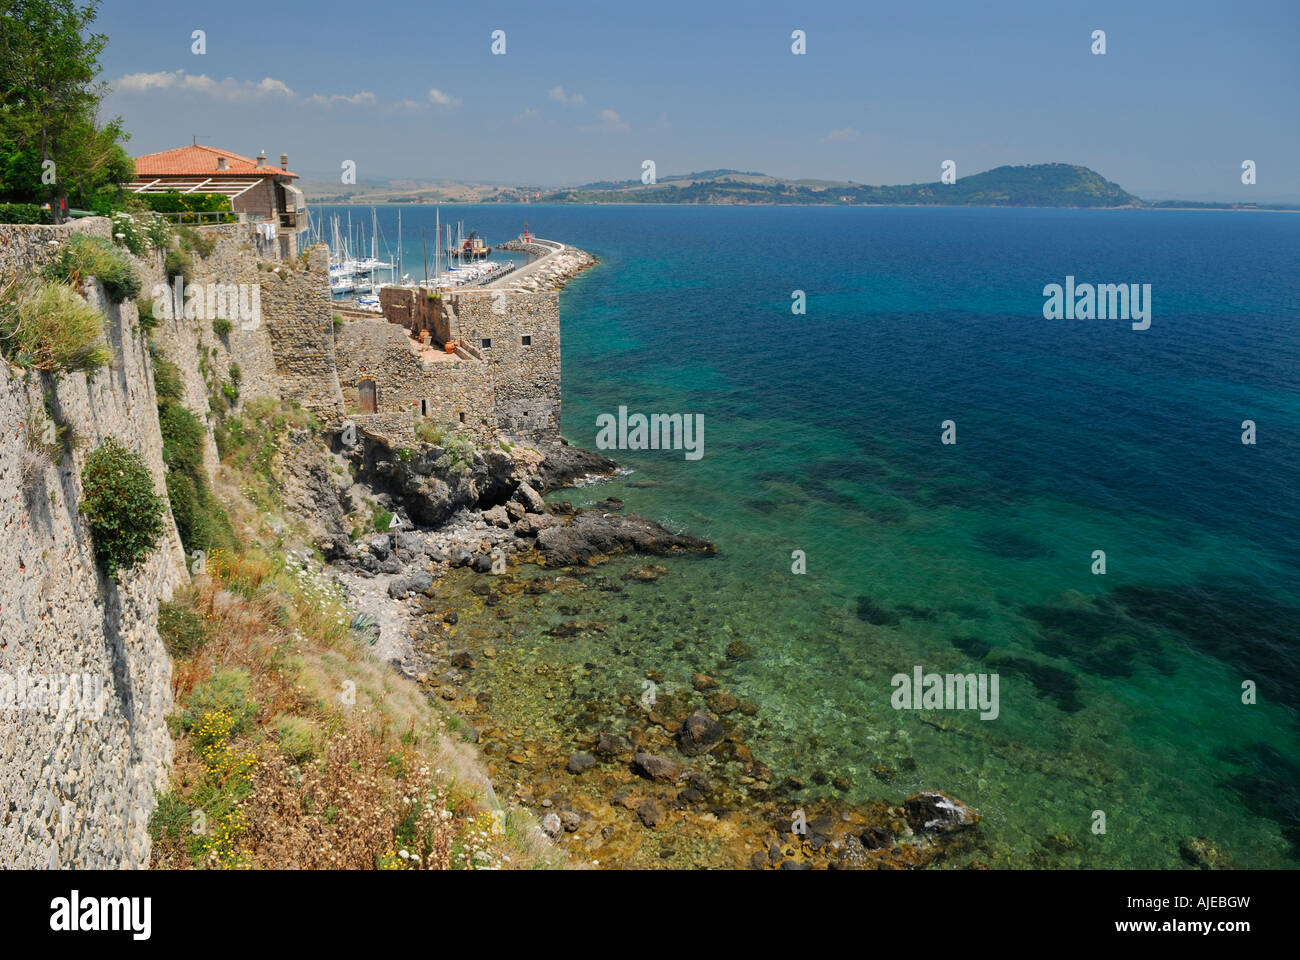 Clear blue Mediterranean sea and cliff high stone walls of Talamone Italy - Stock Image